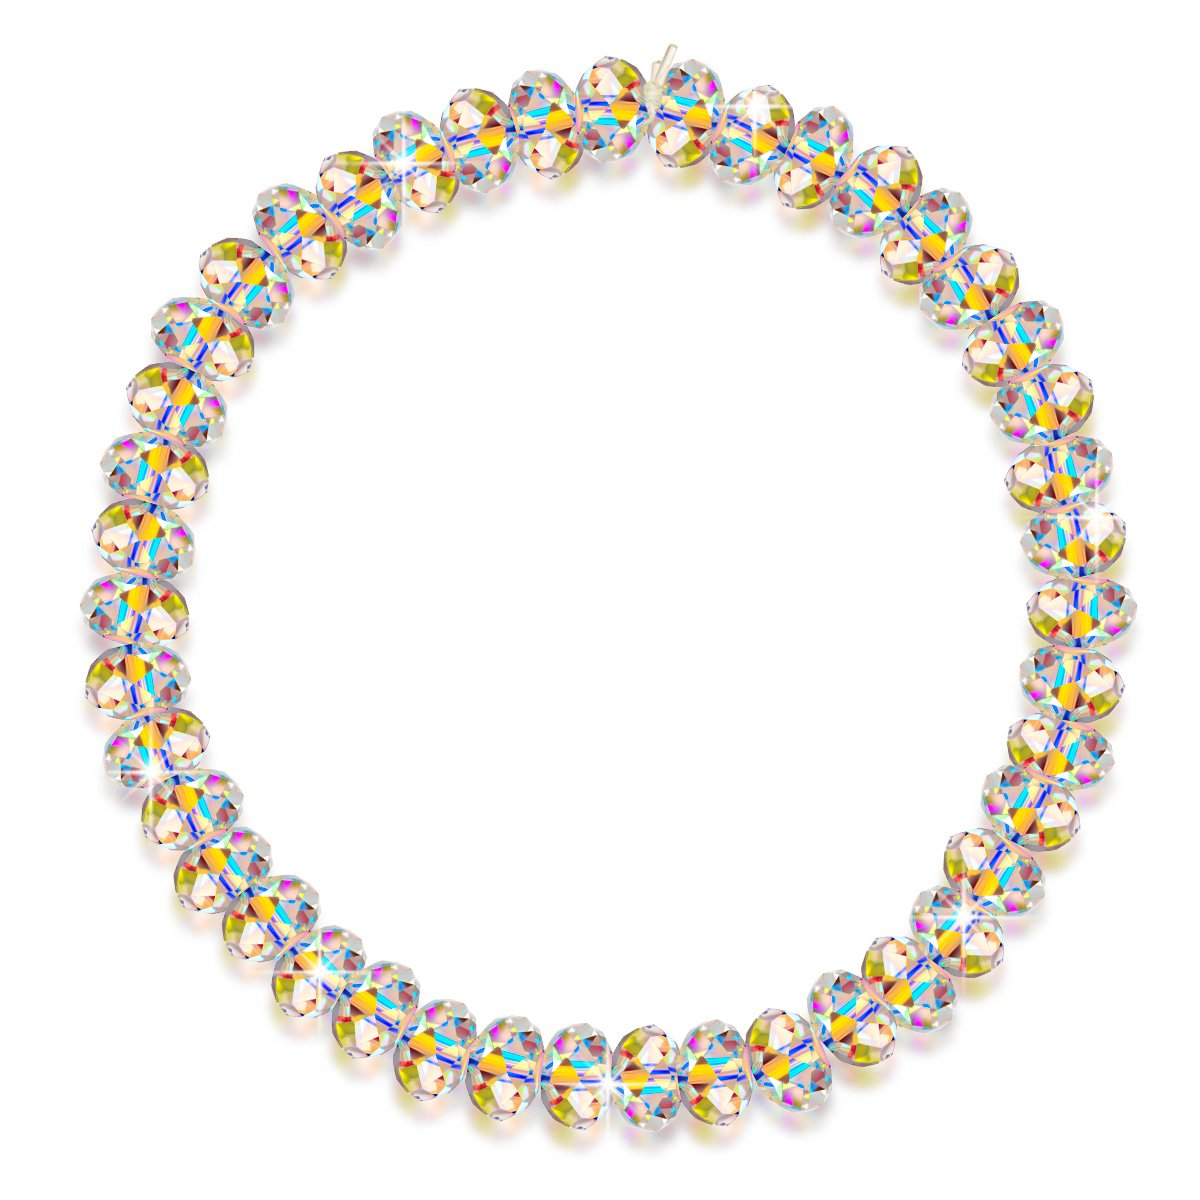 LADY COLOUR Birthday Gifts for Girlfriend Bracelets Swarovski Crystal Jewelry for Women The Best of Youth Stretch Bracelet Anniverysary Gifts for Wife Back to School Gifts for Daughter Granddaughter